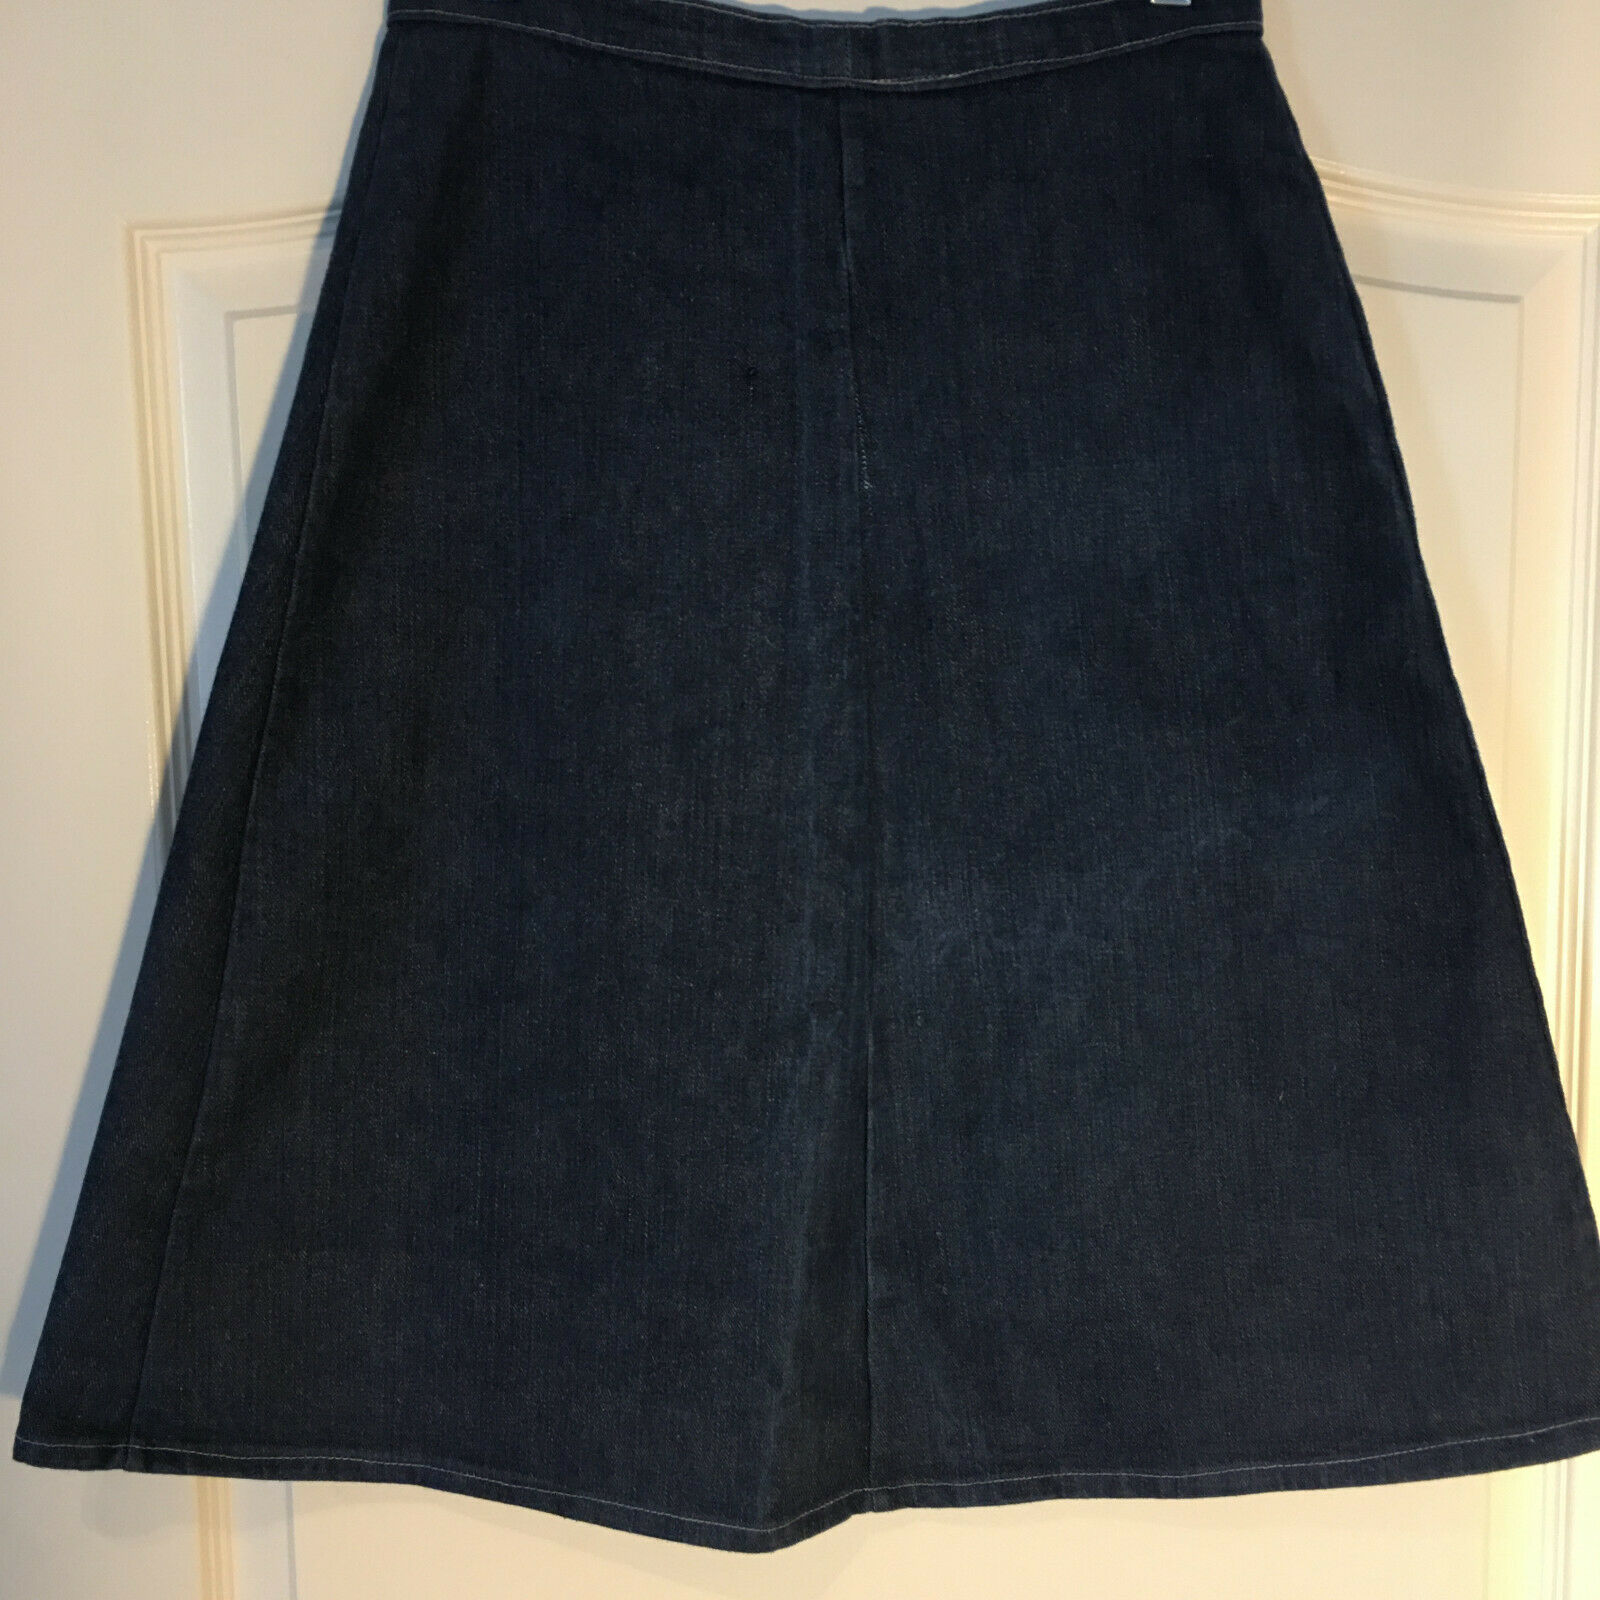 Peekaboo A-Line Vintage Inspired Denim Button Fro… - image 8